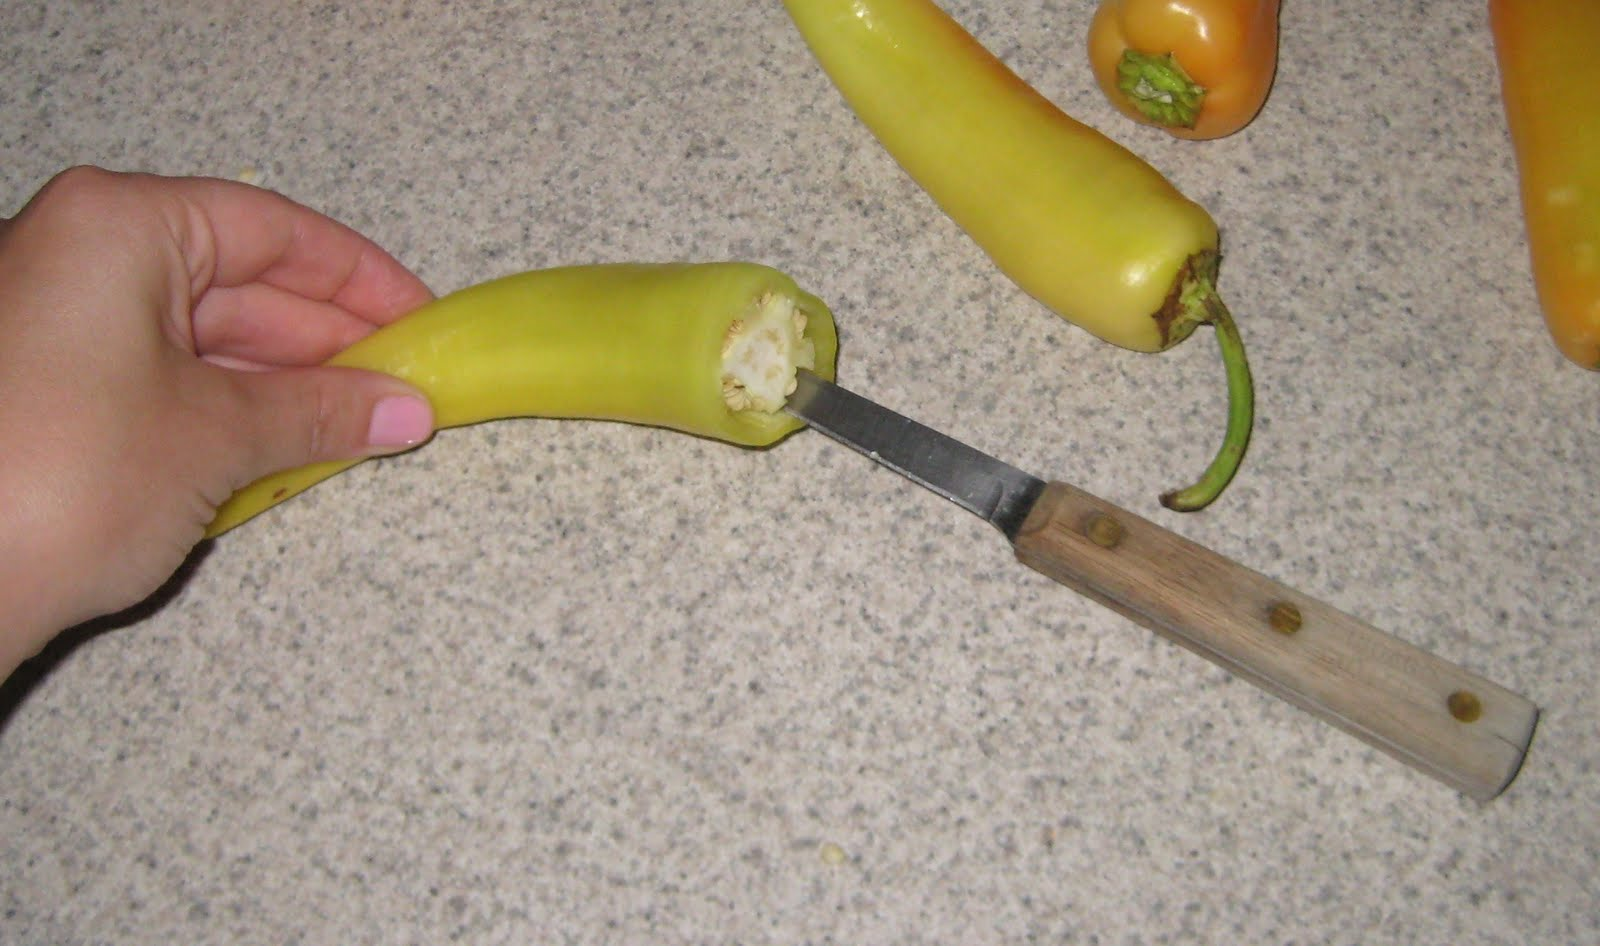 how to cut a pepper properly